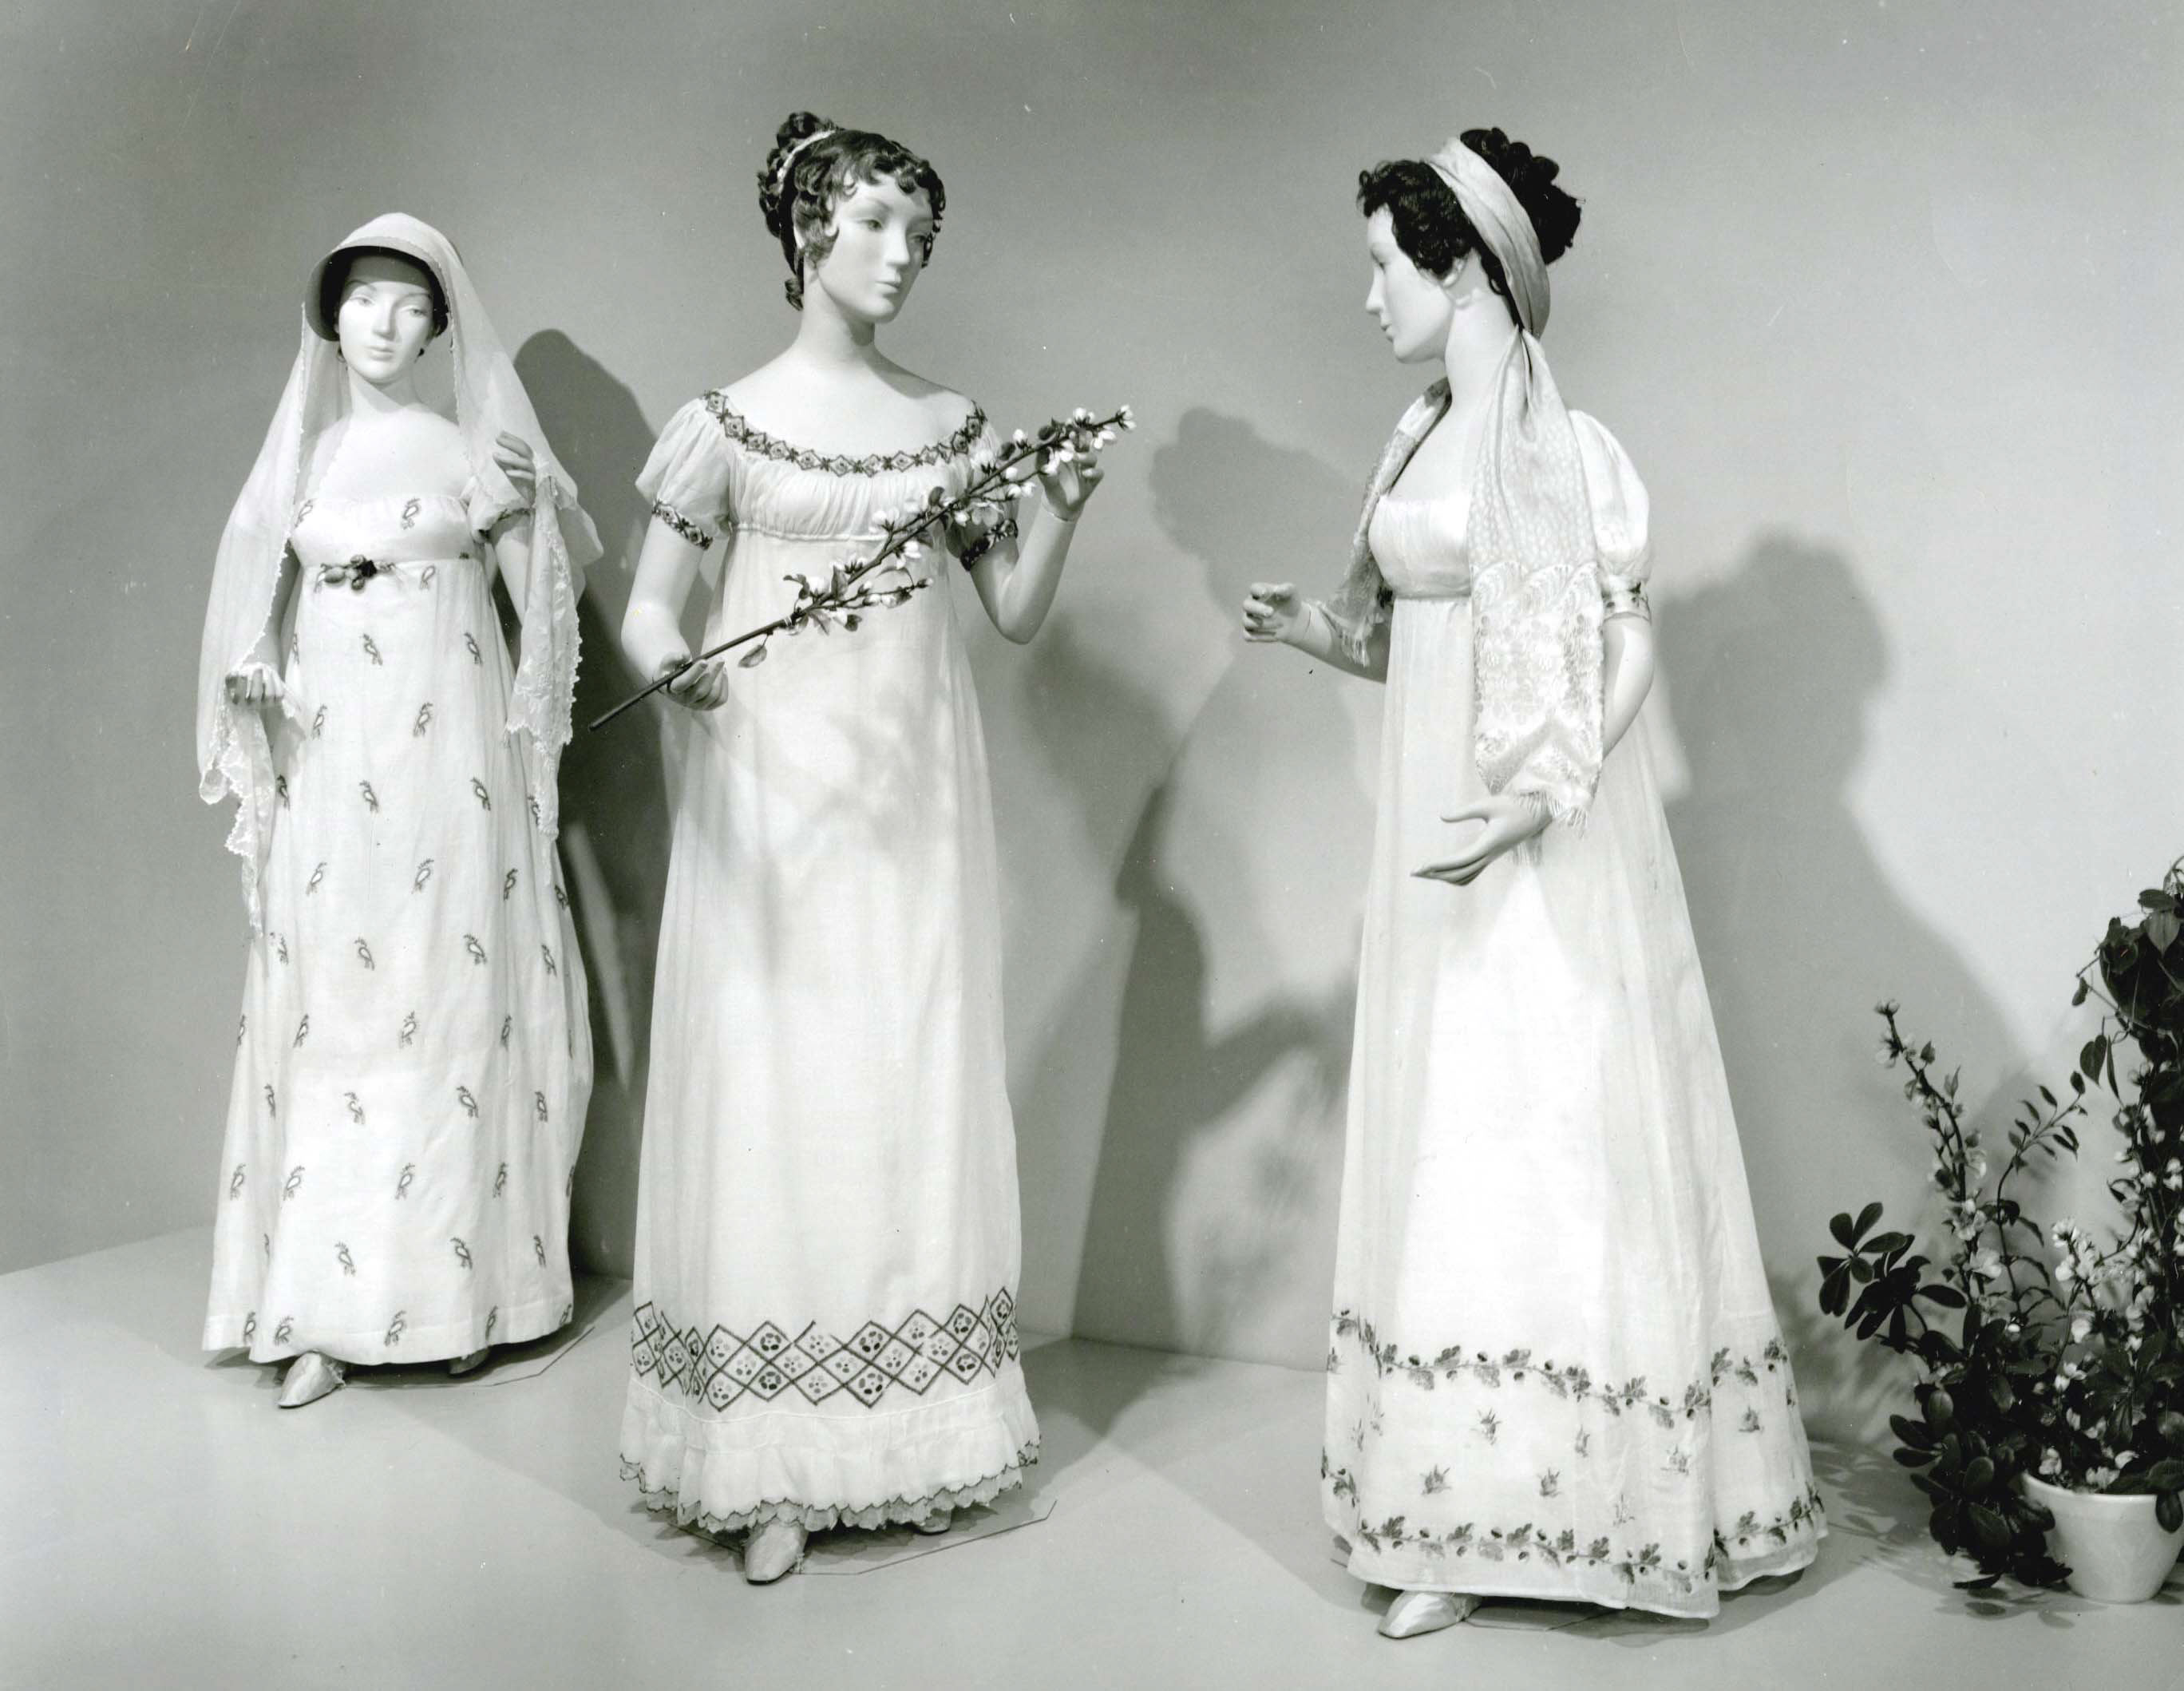 1 000 french canadian clothing french canadian apparel french - From The Met S Summer In Style Exhibition Jun 17 1960 Dresses From 1805 1810 Source